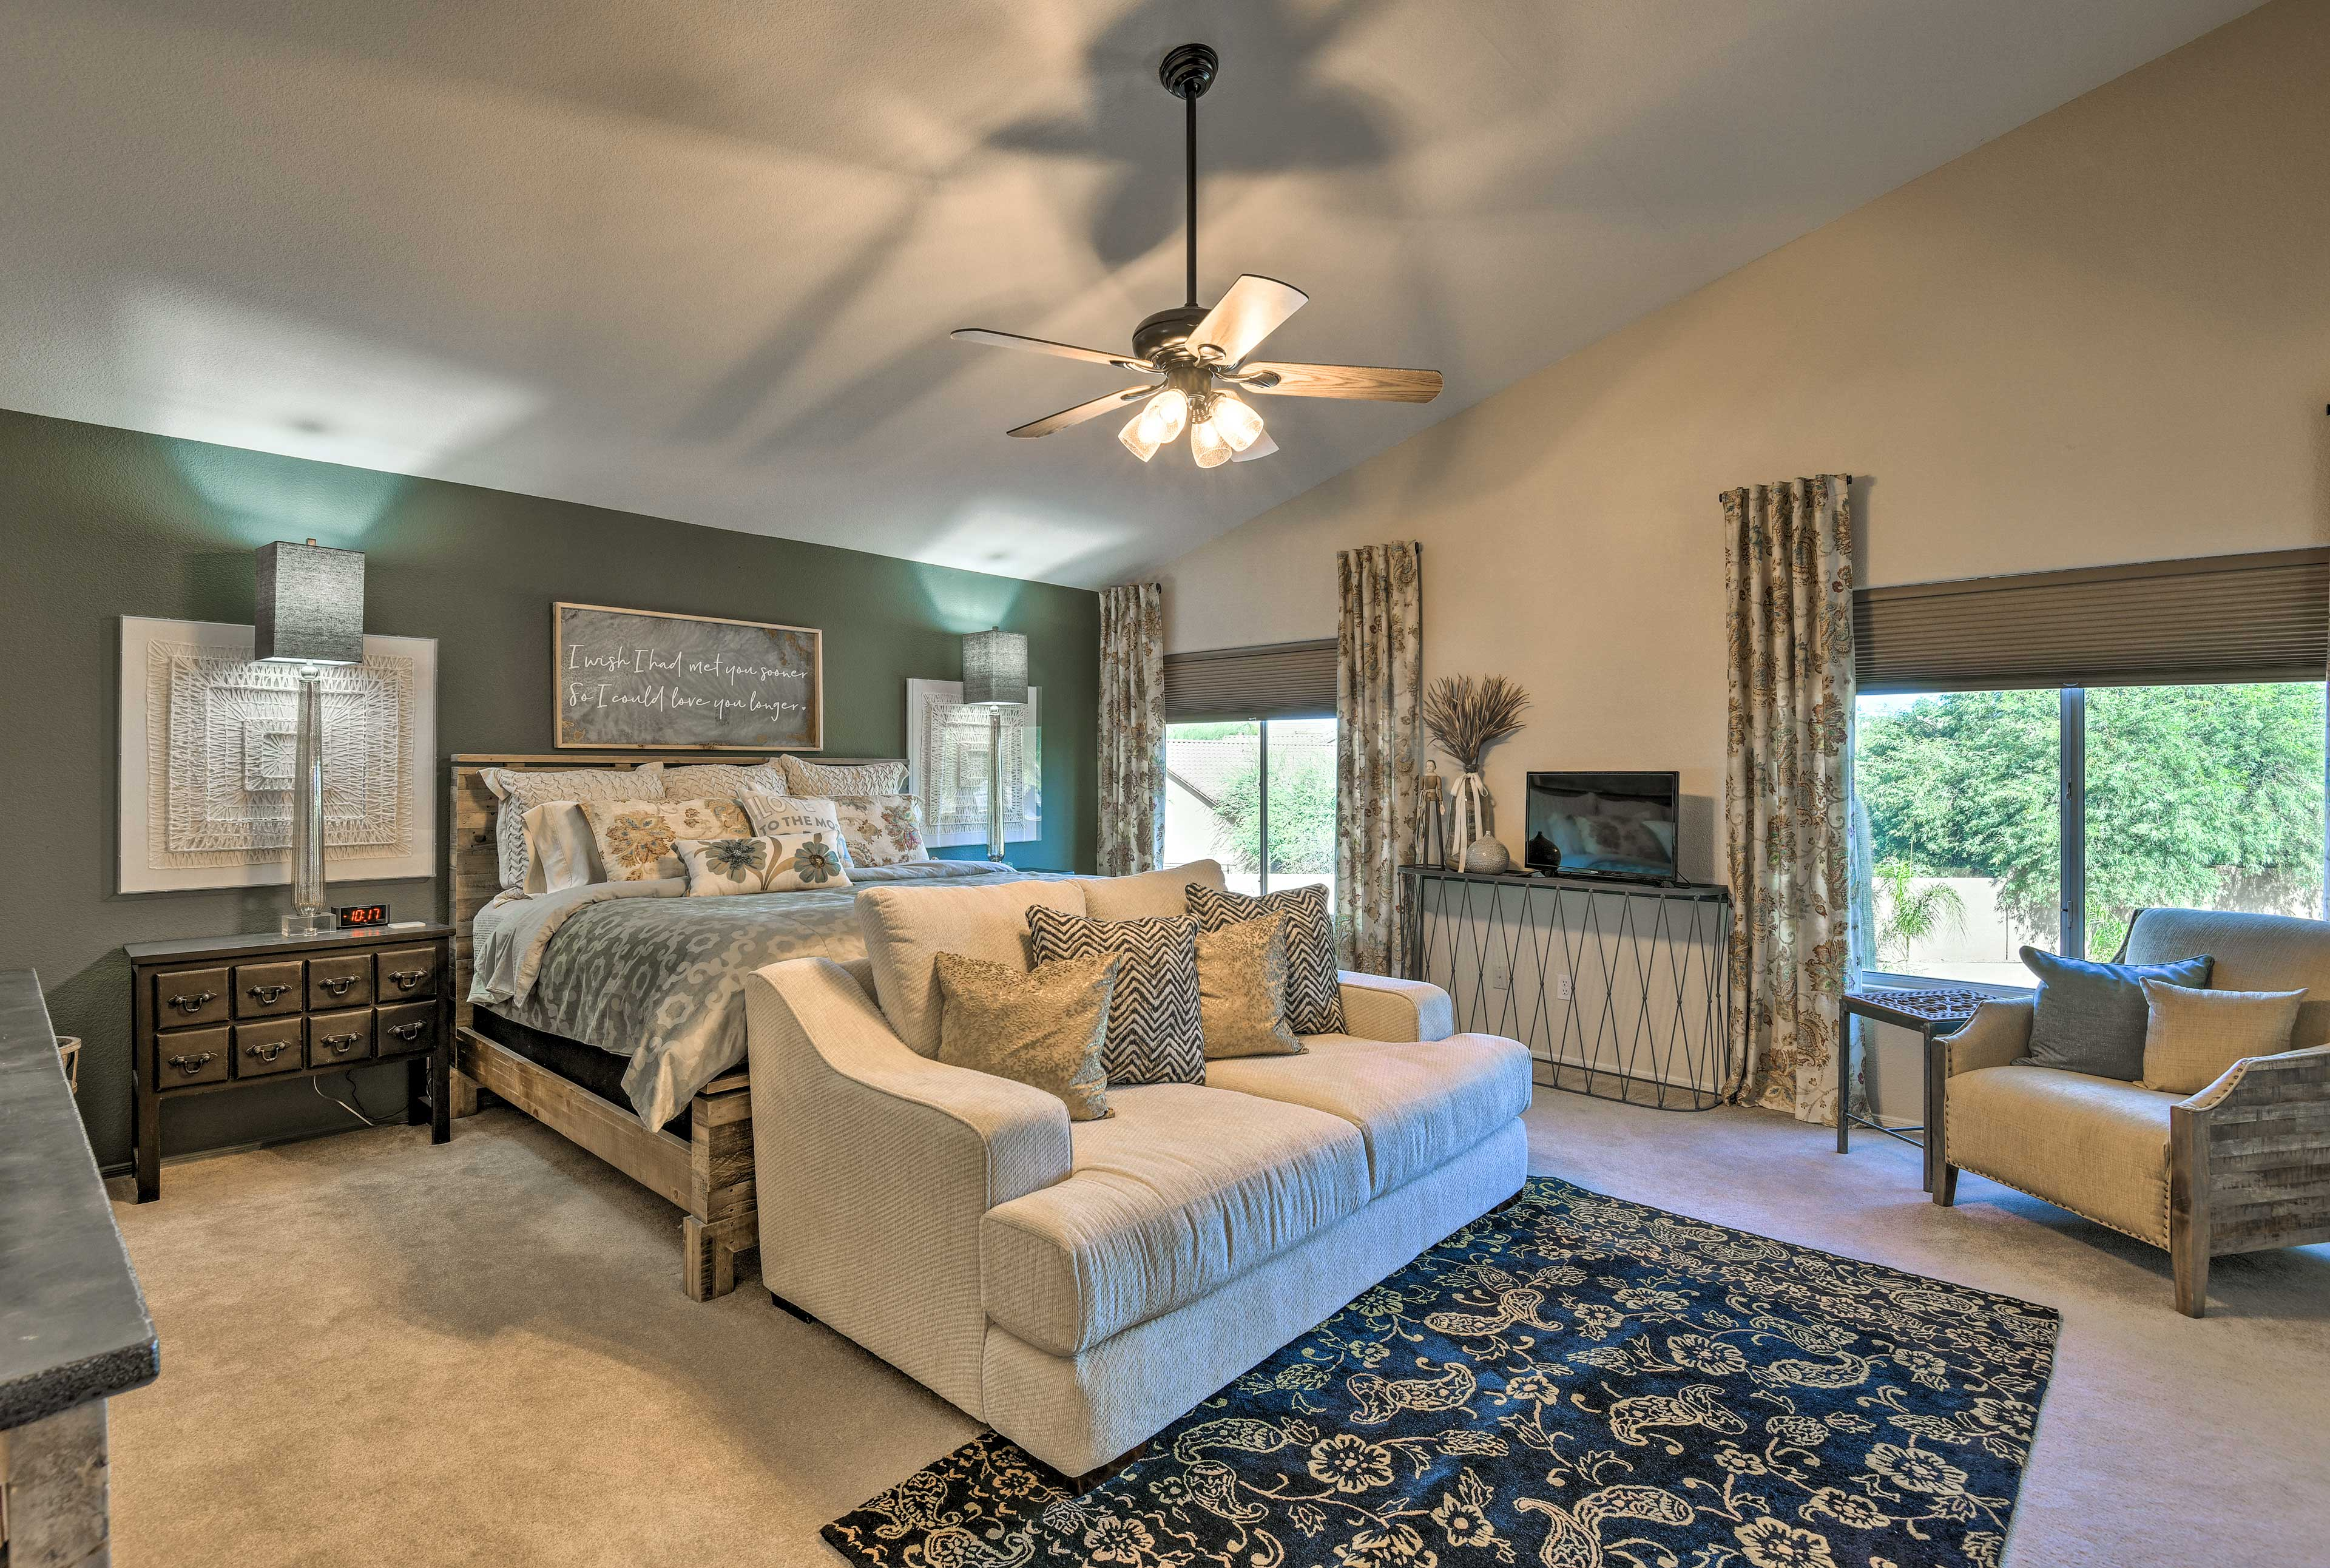 Two lucky guests can claim the king bed in the master bedroom.